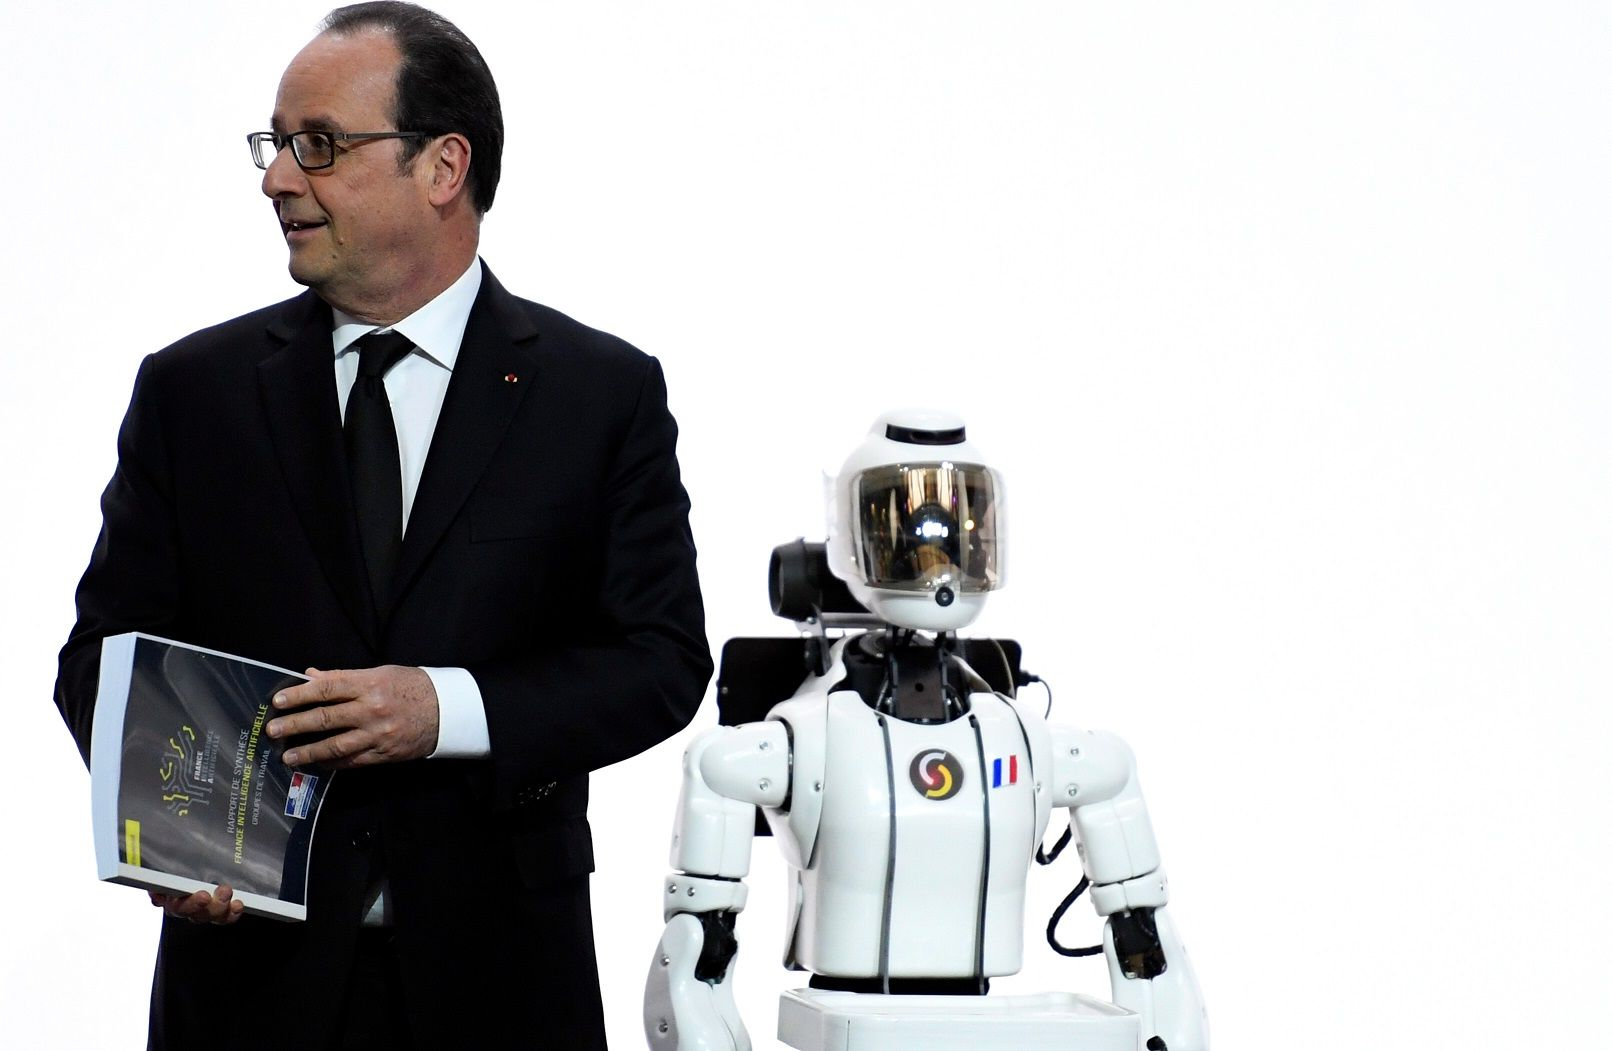 robot politician artificial intelligence AI